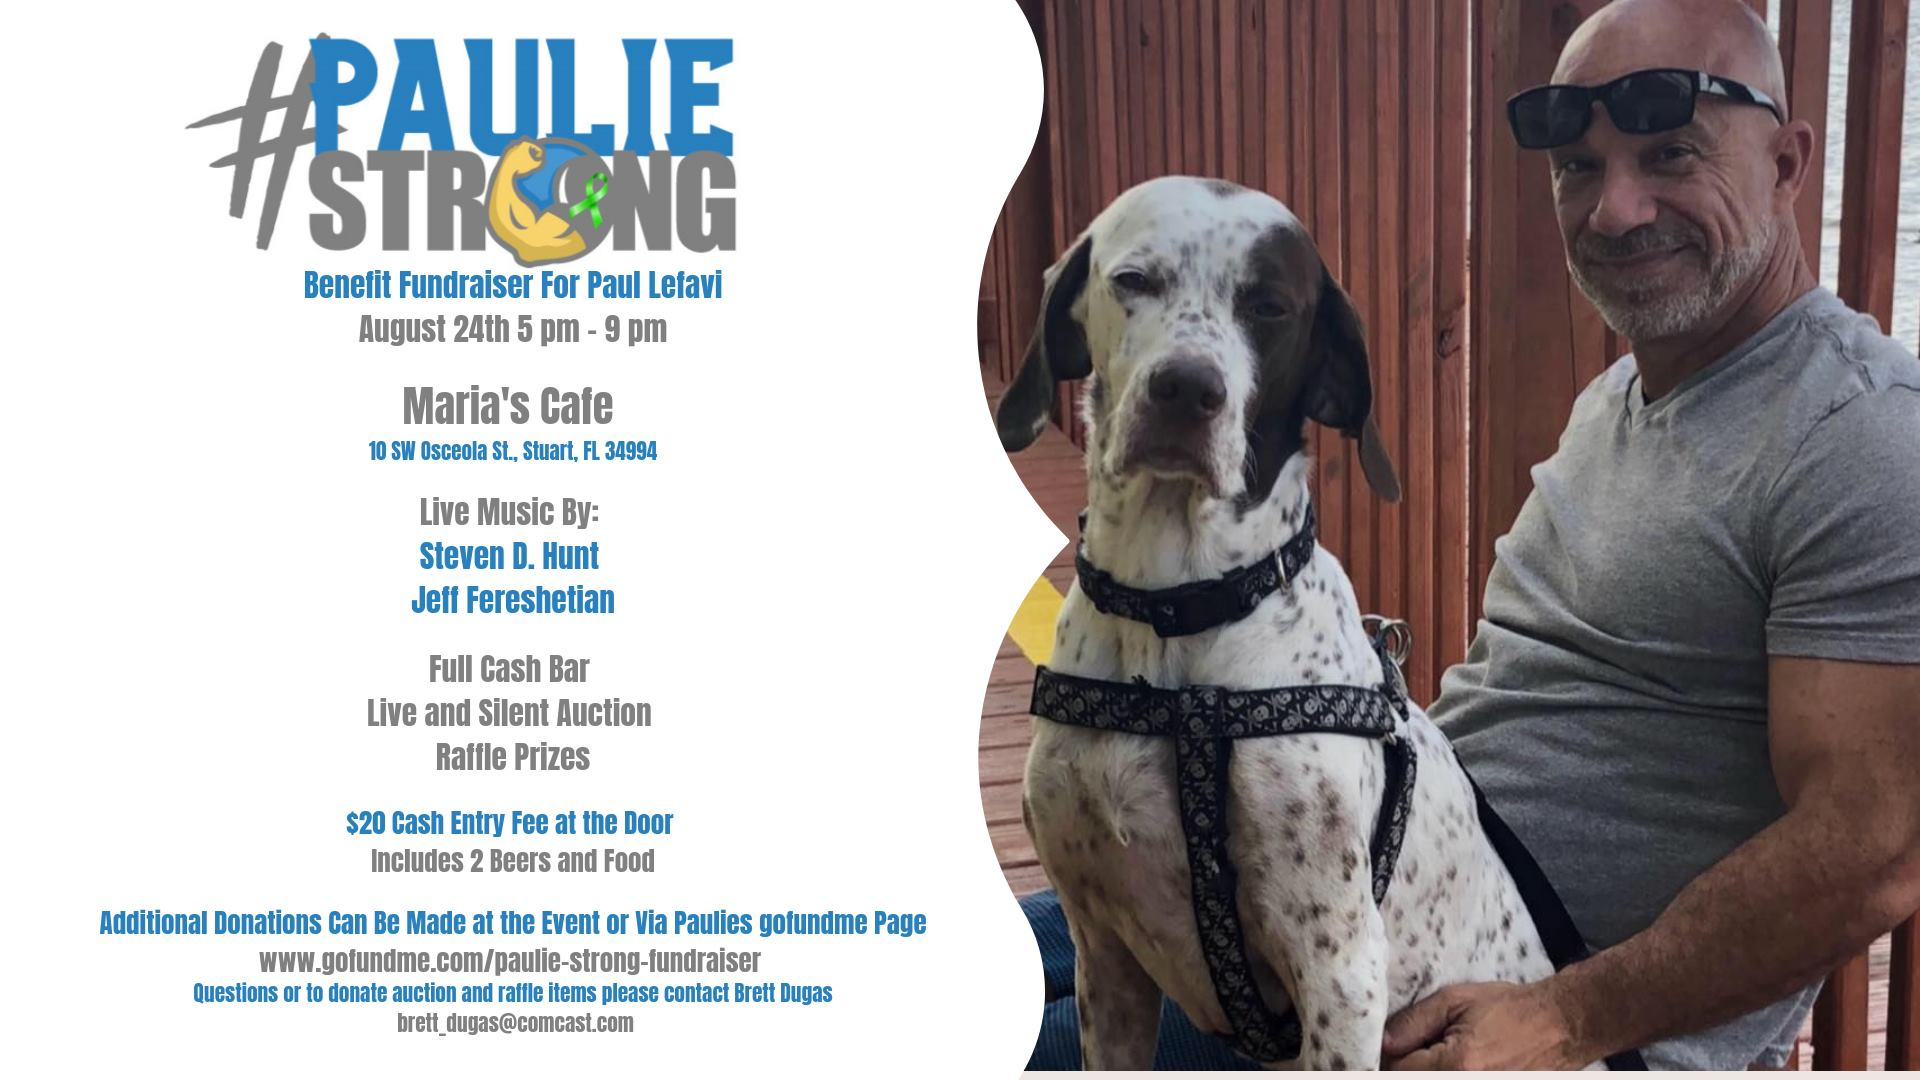 Paulie Strong Benefit Fundraiser for Paul Lefavi